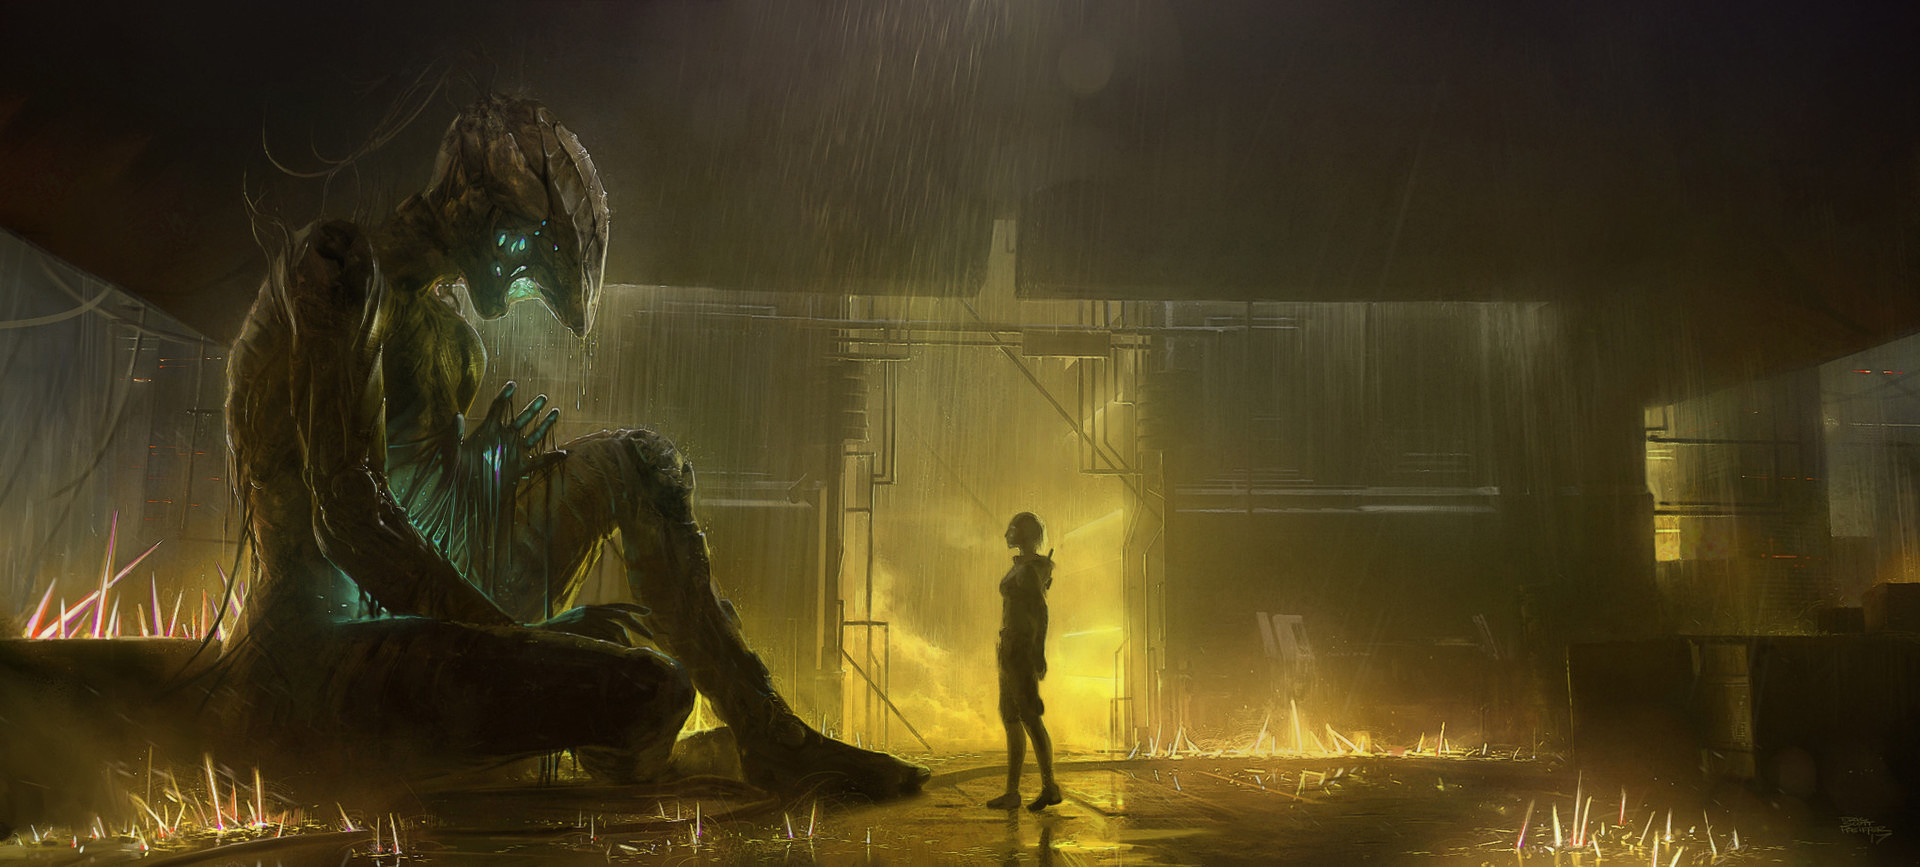 The Amazing Science Fiction Art of Eric Pfeiffer